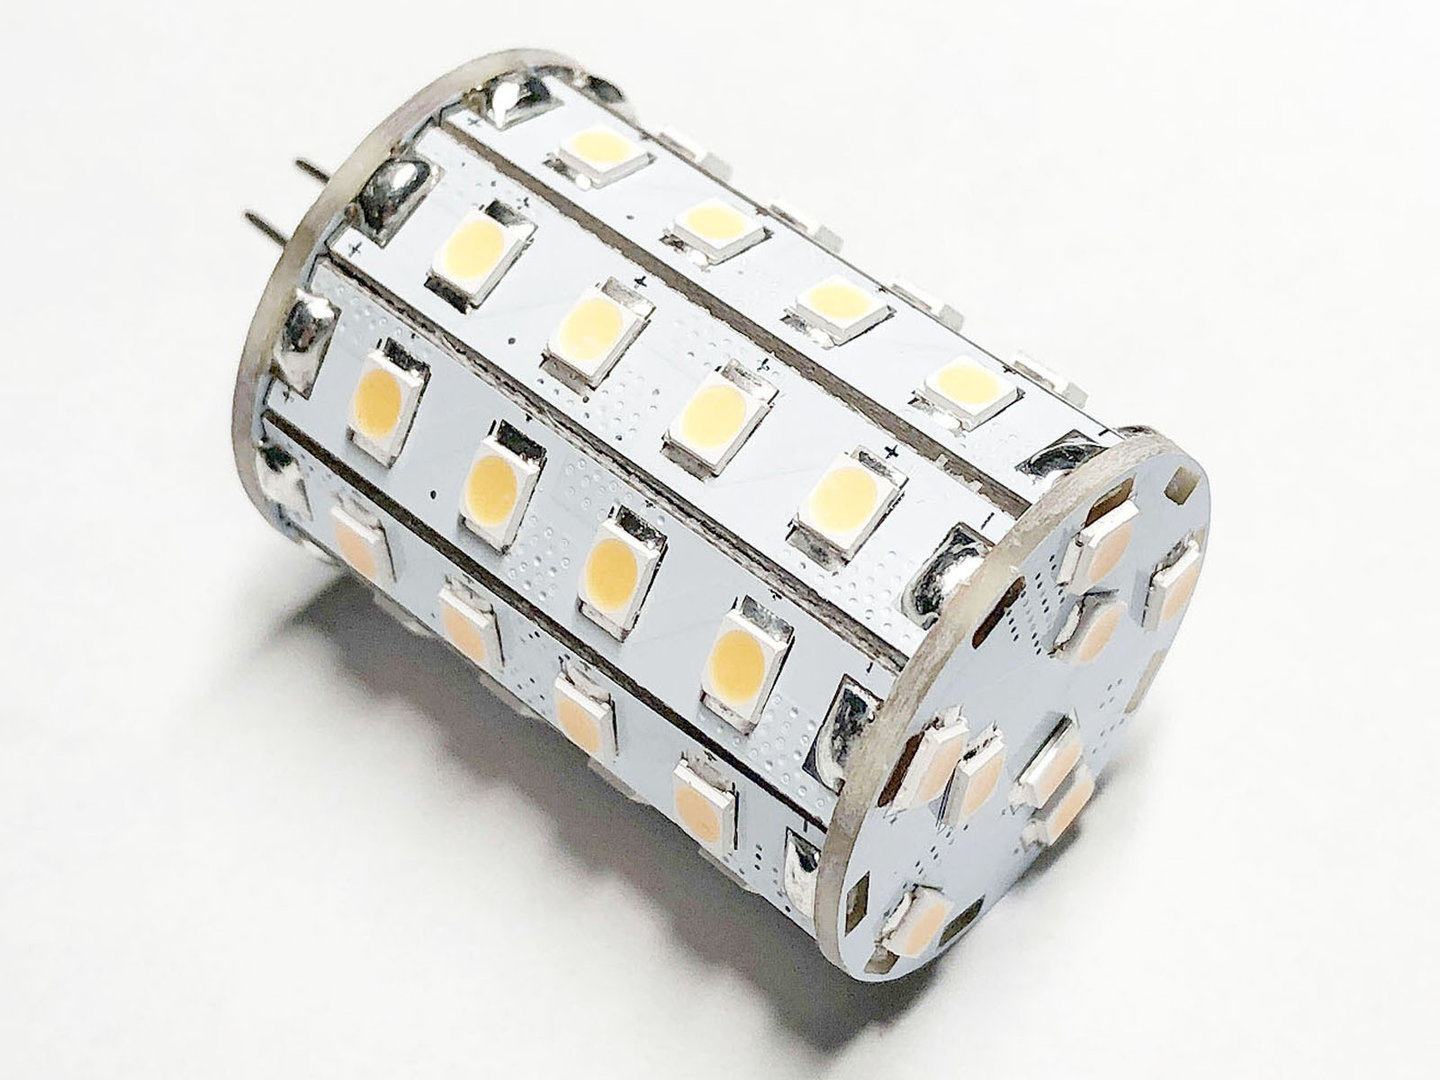 Stiftsockel G4 V 48 LED SMD 550L 10-30V warmweiß